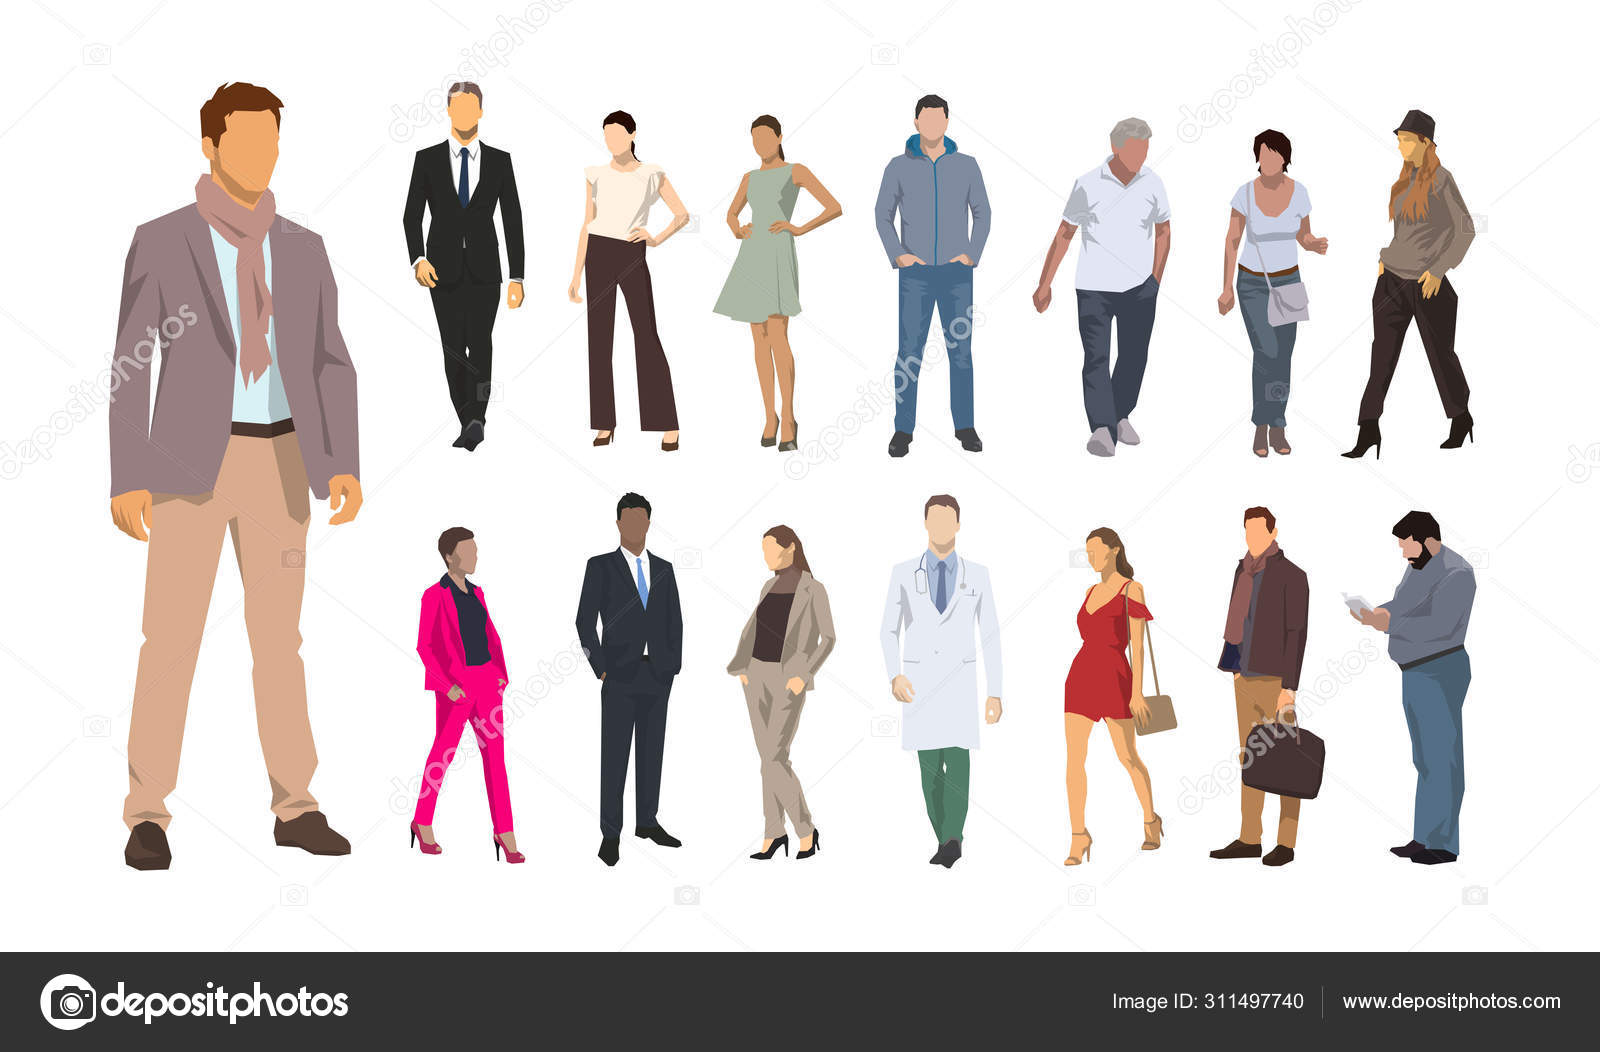 group od people flat design illustrations men and women vector stock vector c msanca 311497740 group od people flat design illustrations men and women vector stock vector c msanca 311497740